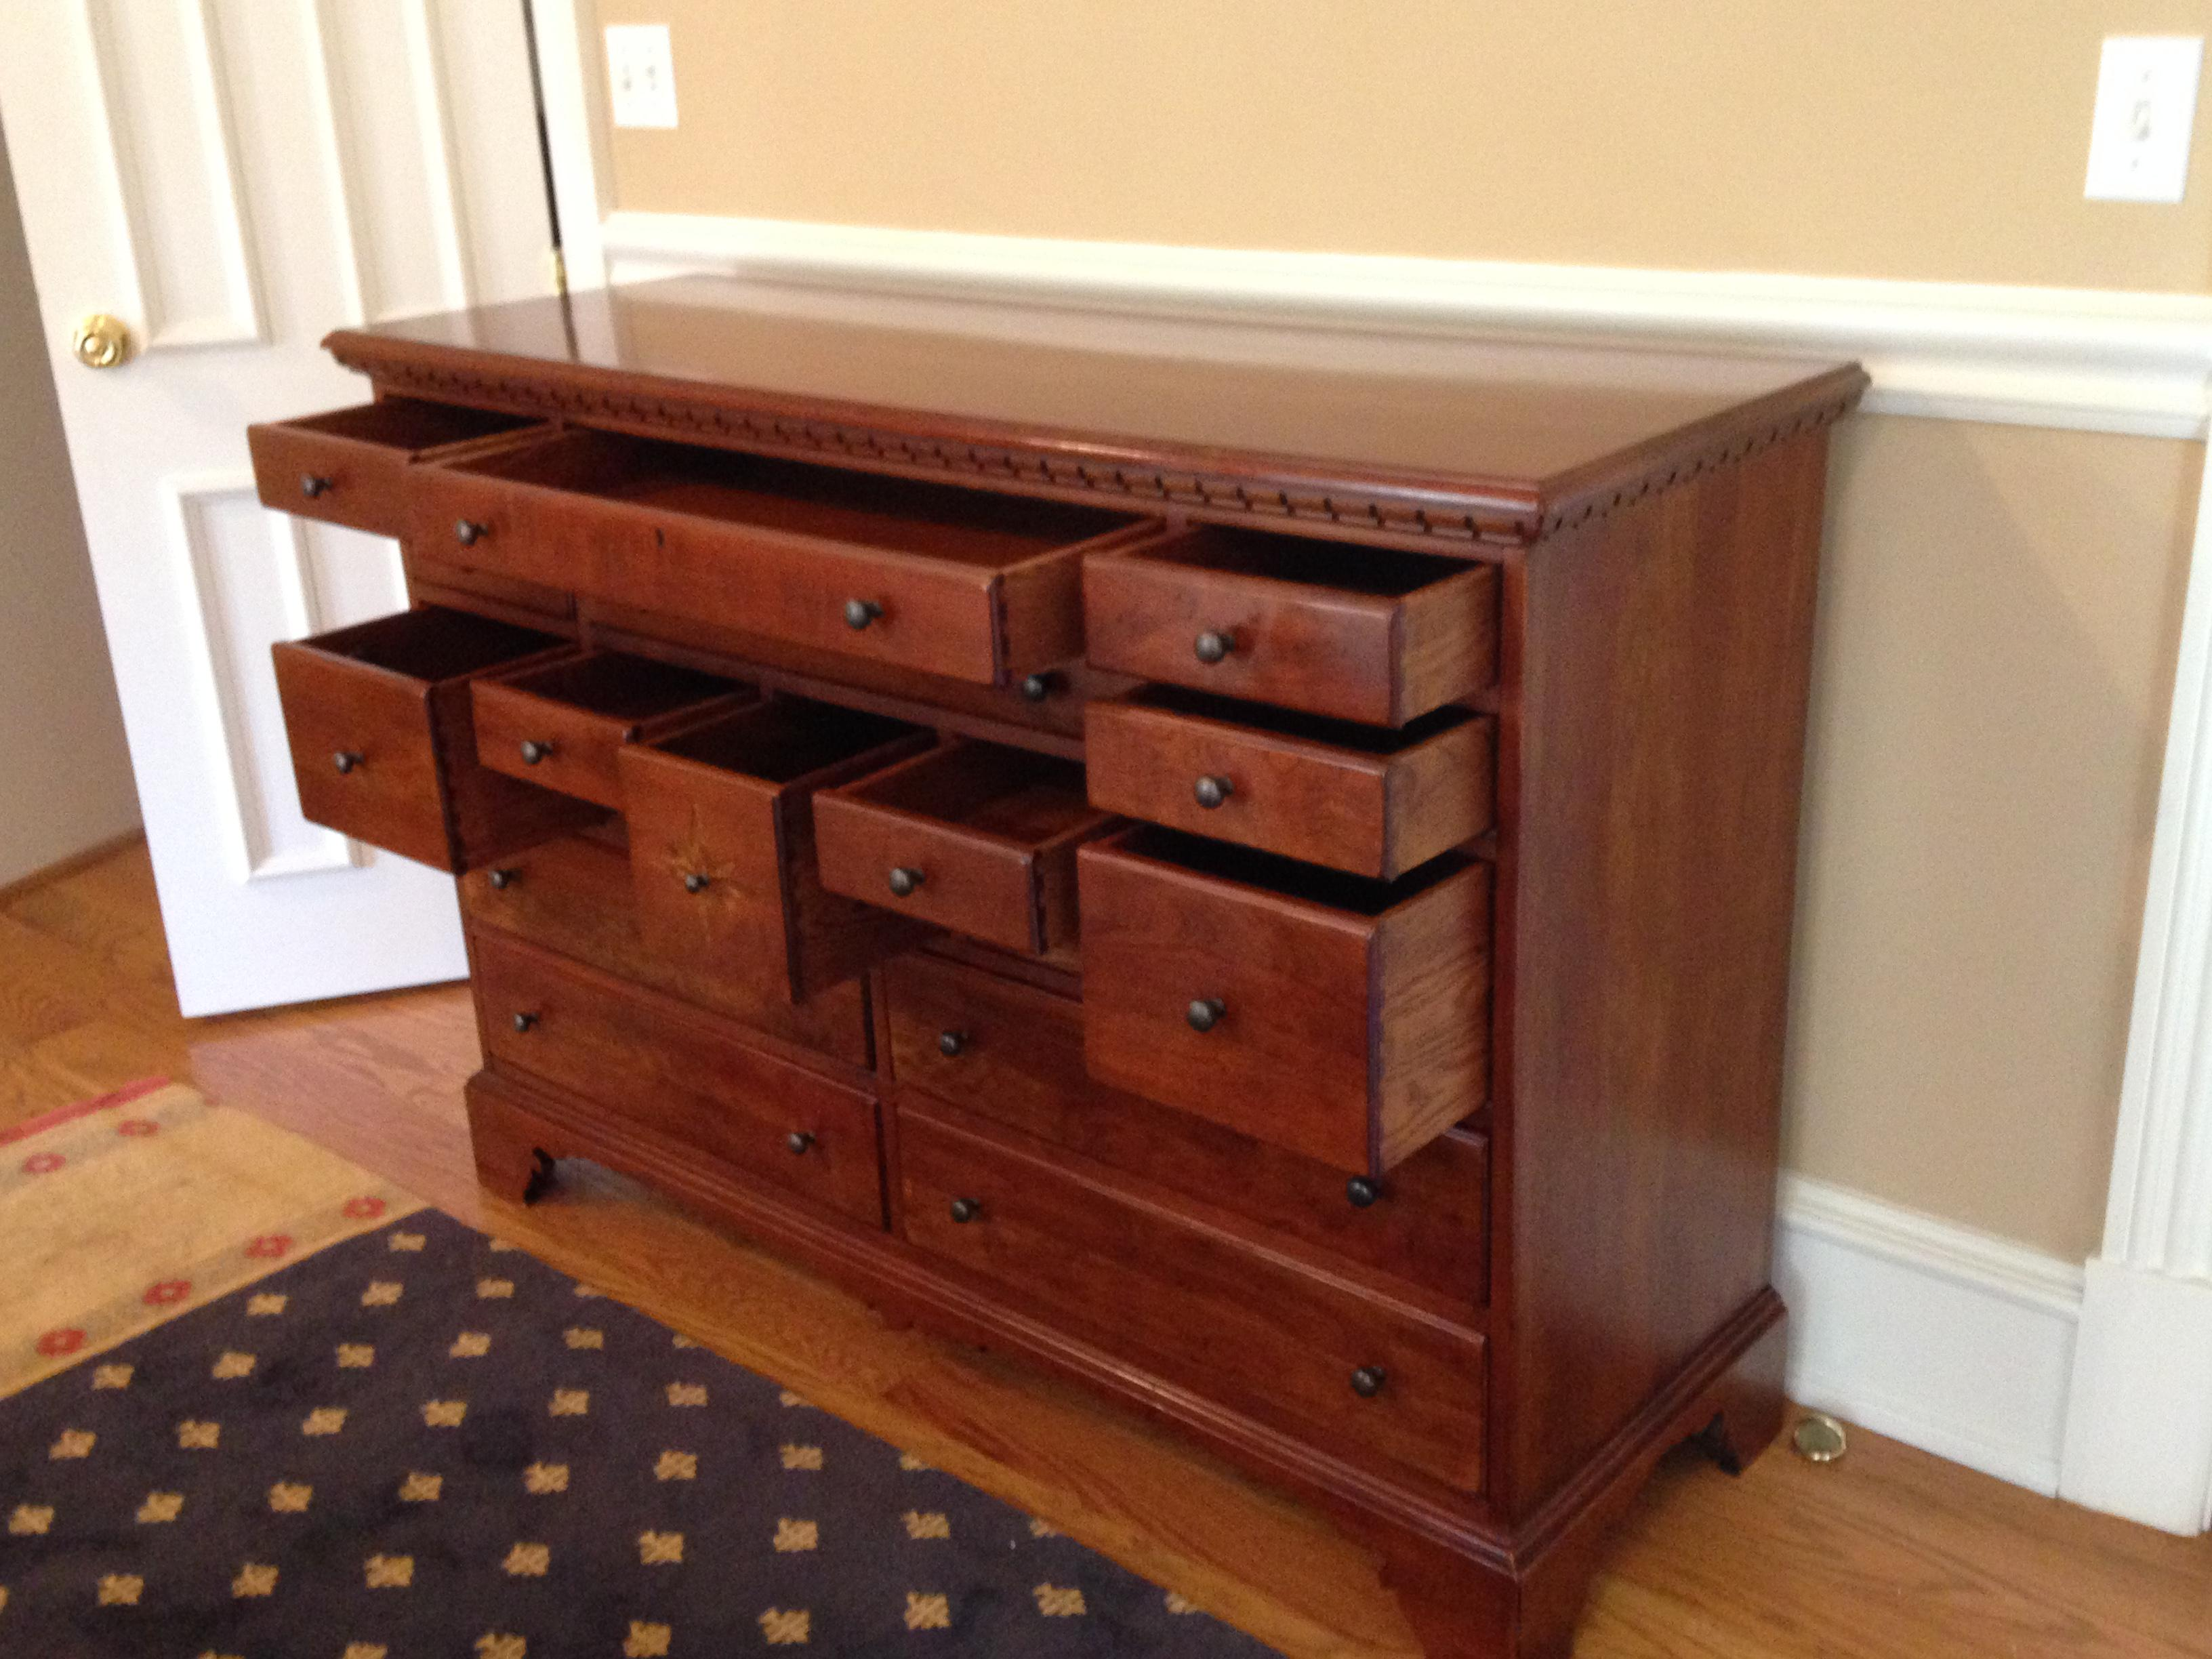 Beau Lexington Furniture Bob Timberlake Old Salem By Lexington Collectors Chest  Dresser Made In Usa For Sale